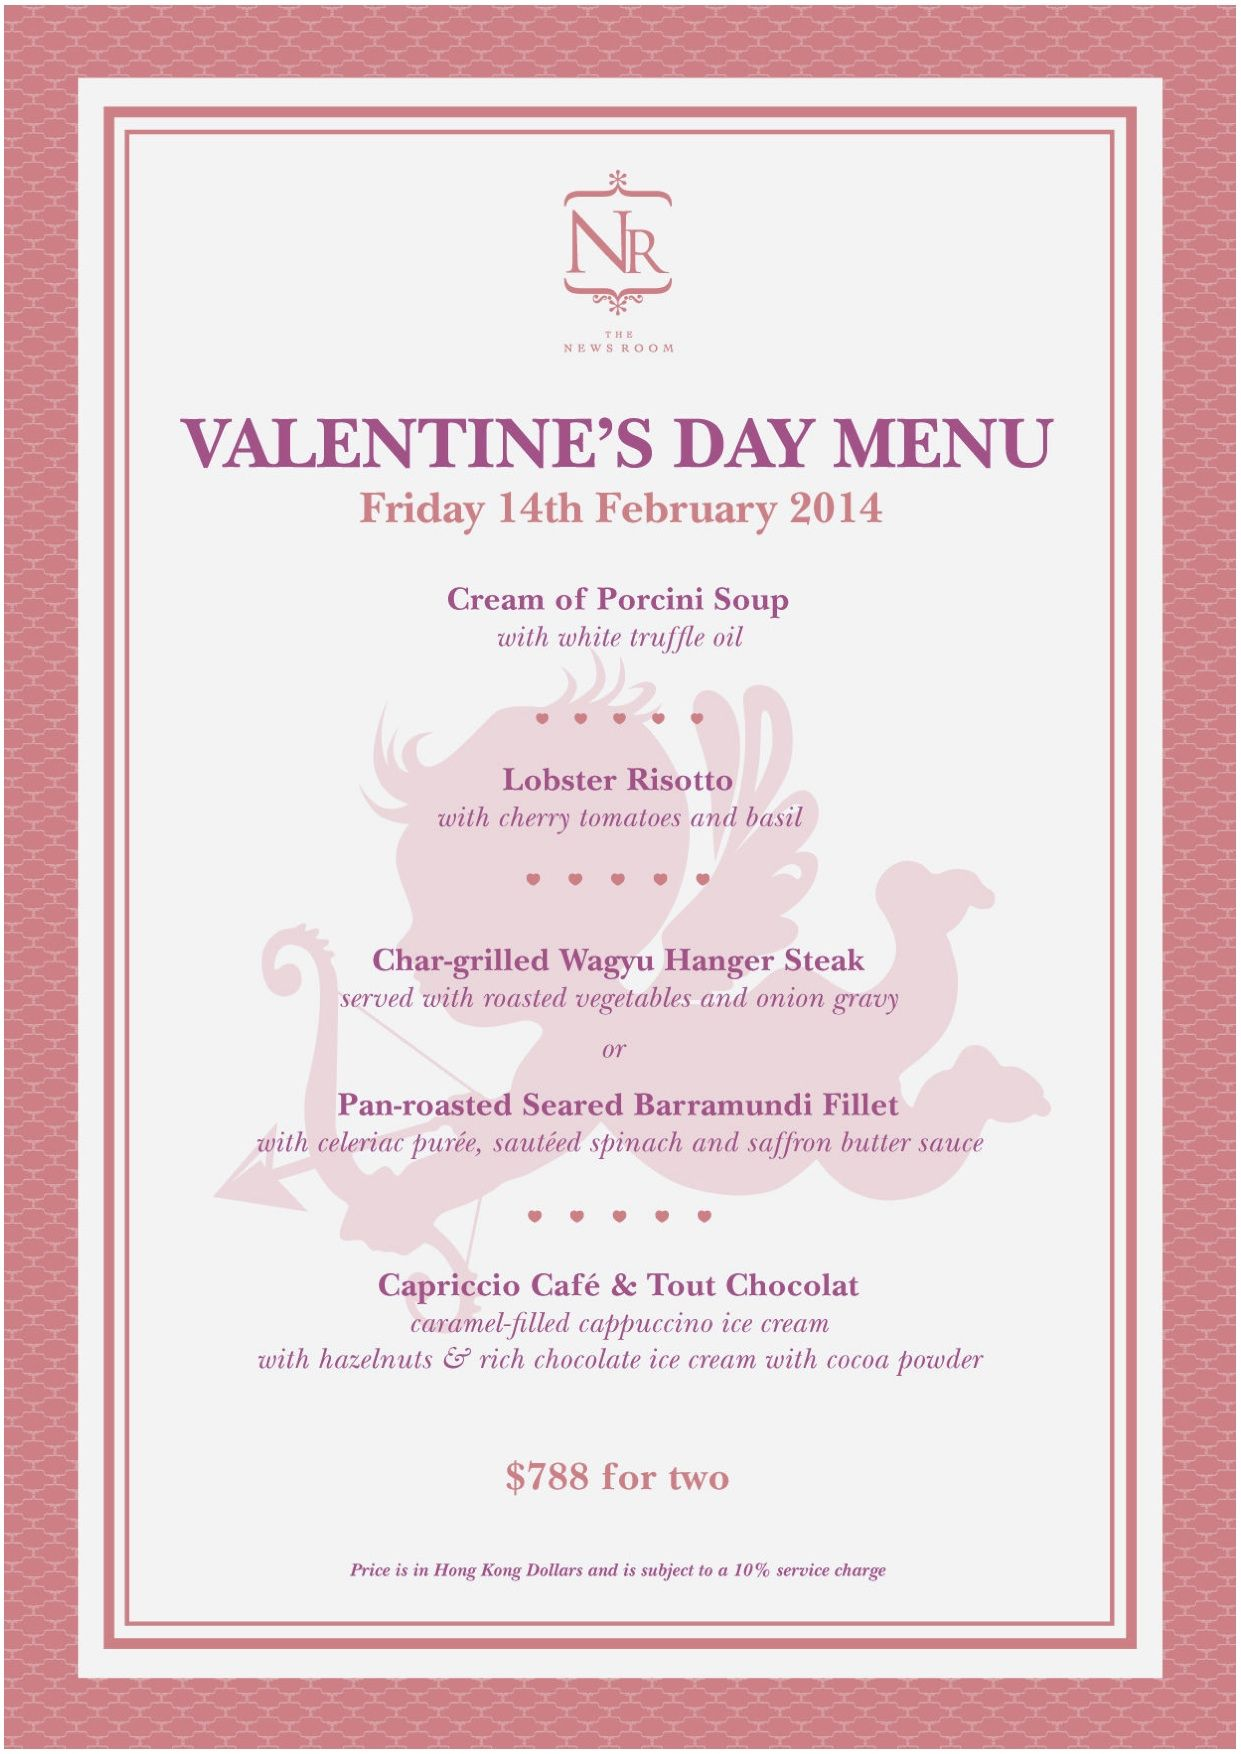 The News Room Valentine's Day Menu | Reserve a table at http://chope.com.hk/categories/restaurant/the-news-room